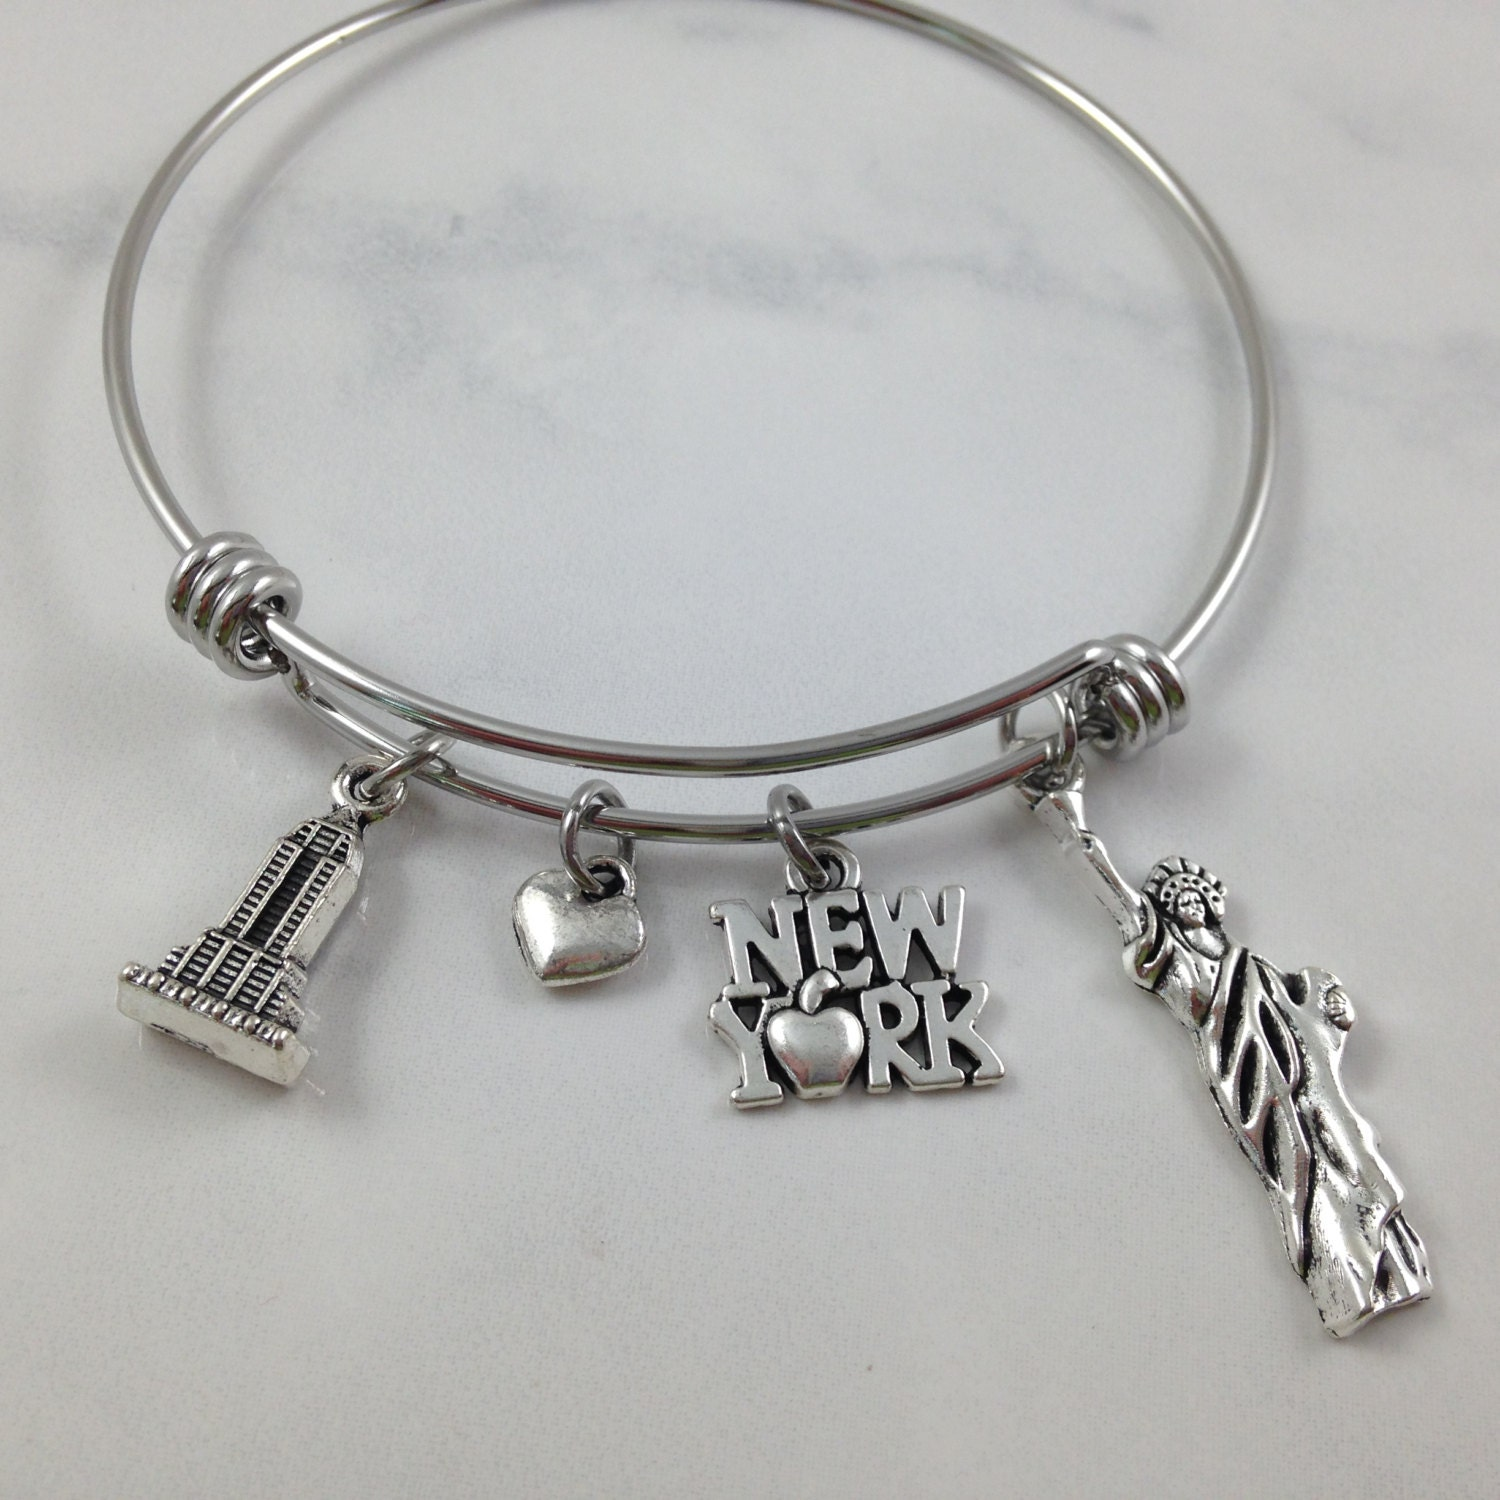 New York Charm Bracelet I Love New York Charm Bracelet New